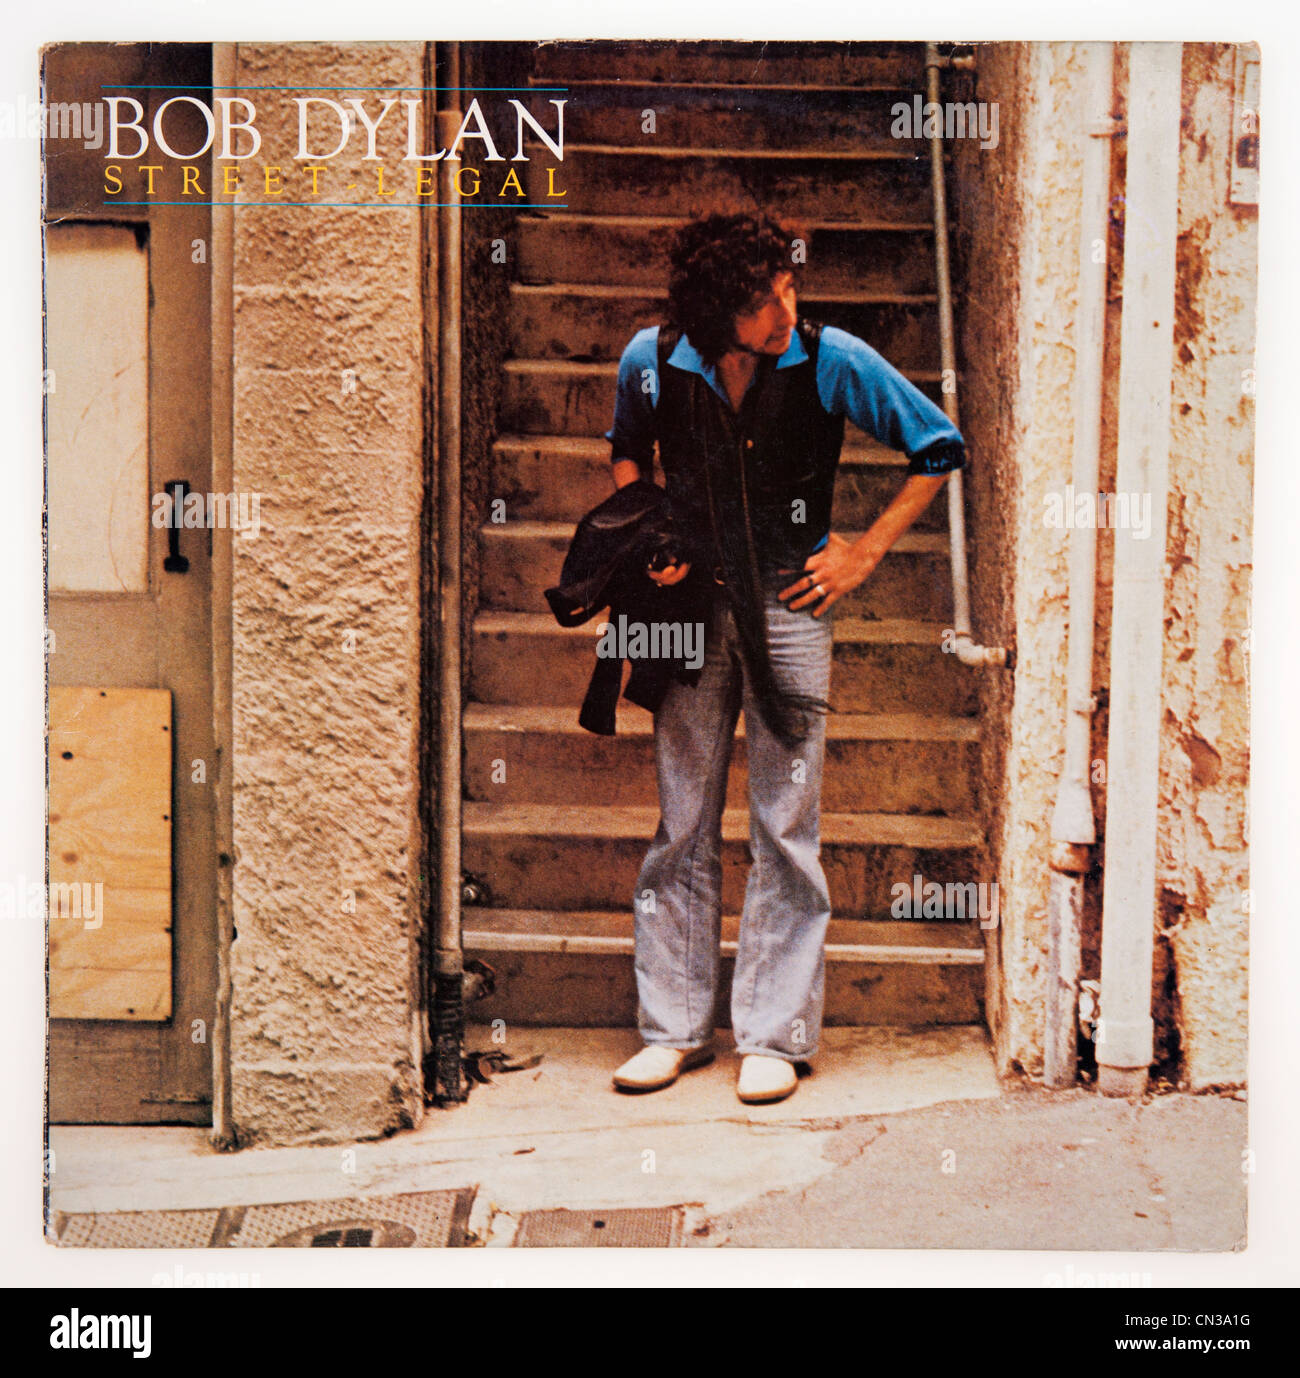 Cover of vinyl album Street Legal by Bob Dylan, released 1978 on ...